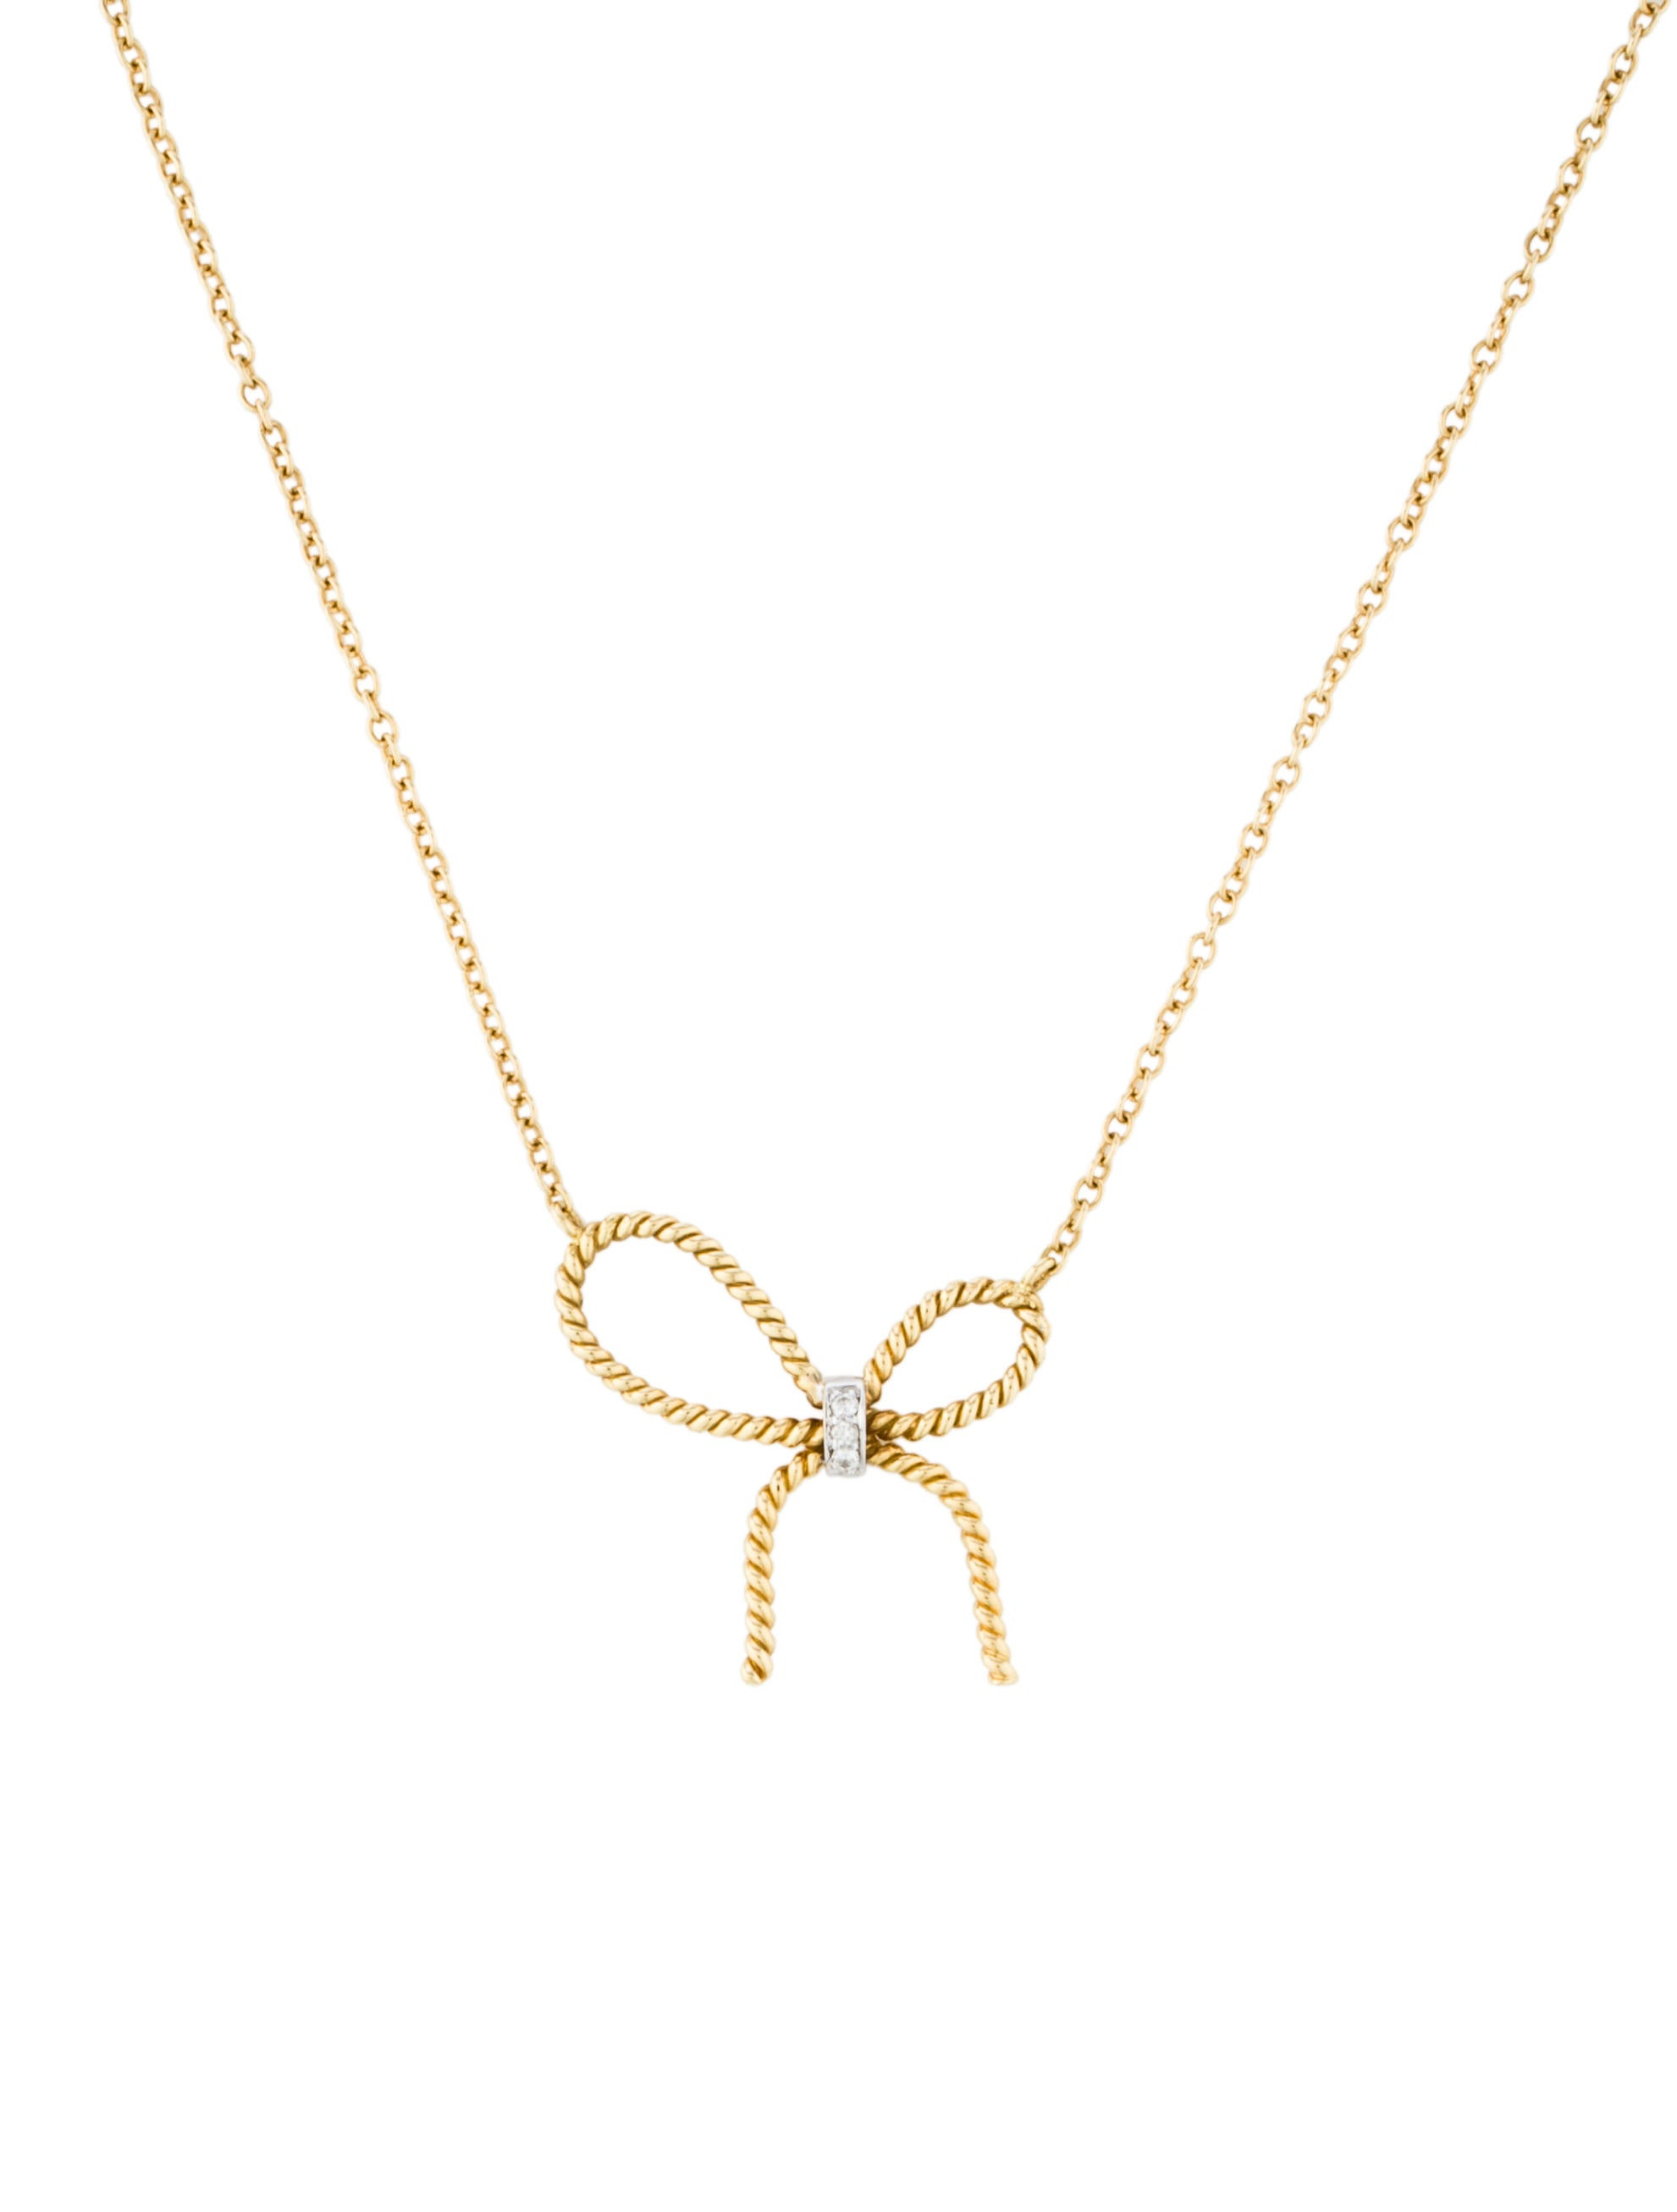 bow graff collections diamond featuring pav a necklace open motif